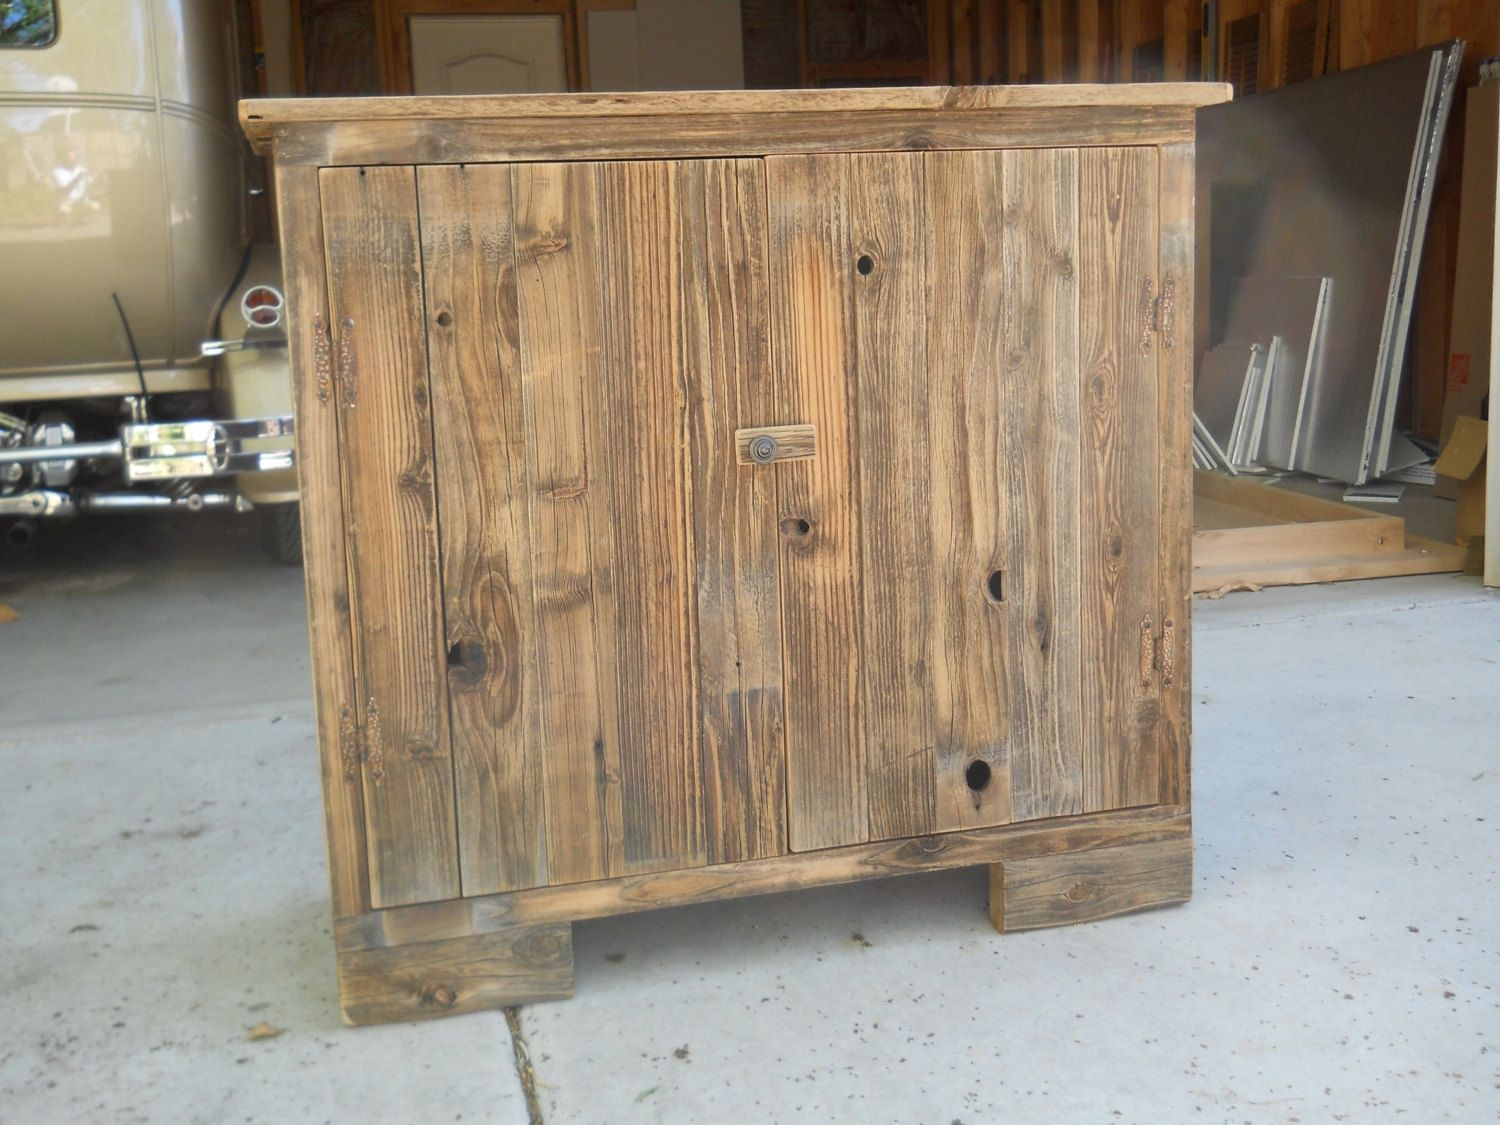 Superb img of Custom Wide Wooden Shoe Cabinet by Treehousewoodworks CustomMade.com with #866E45 color and 1500x1125 pixels